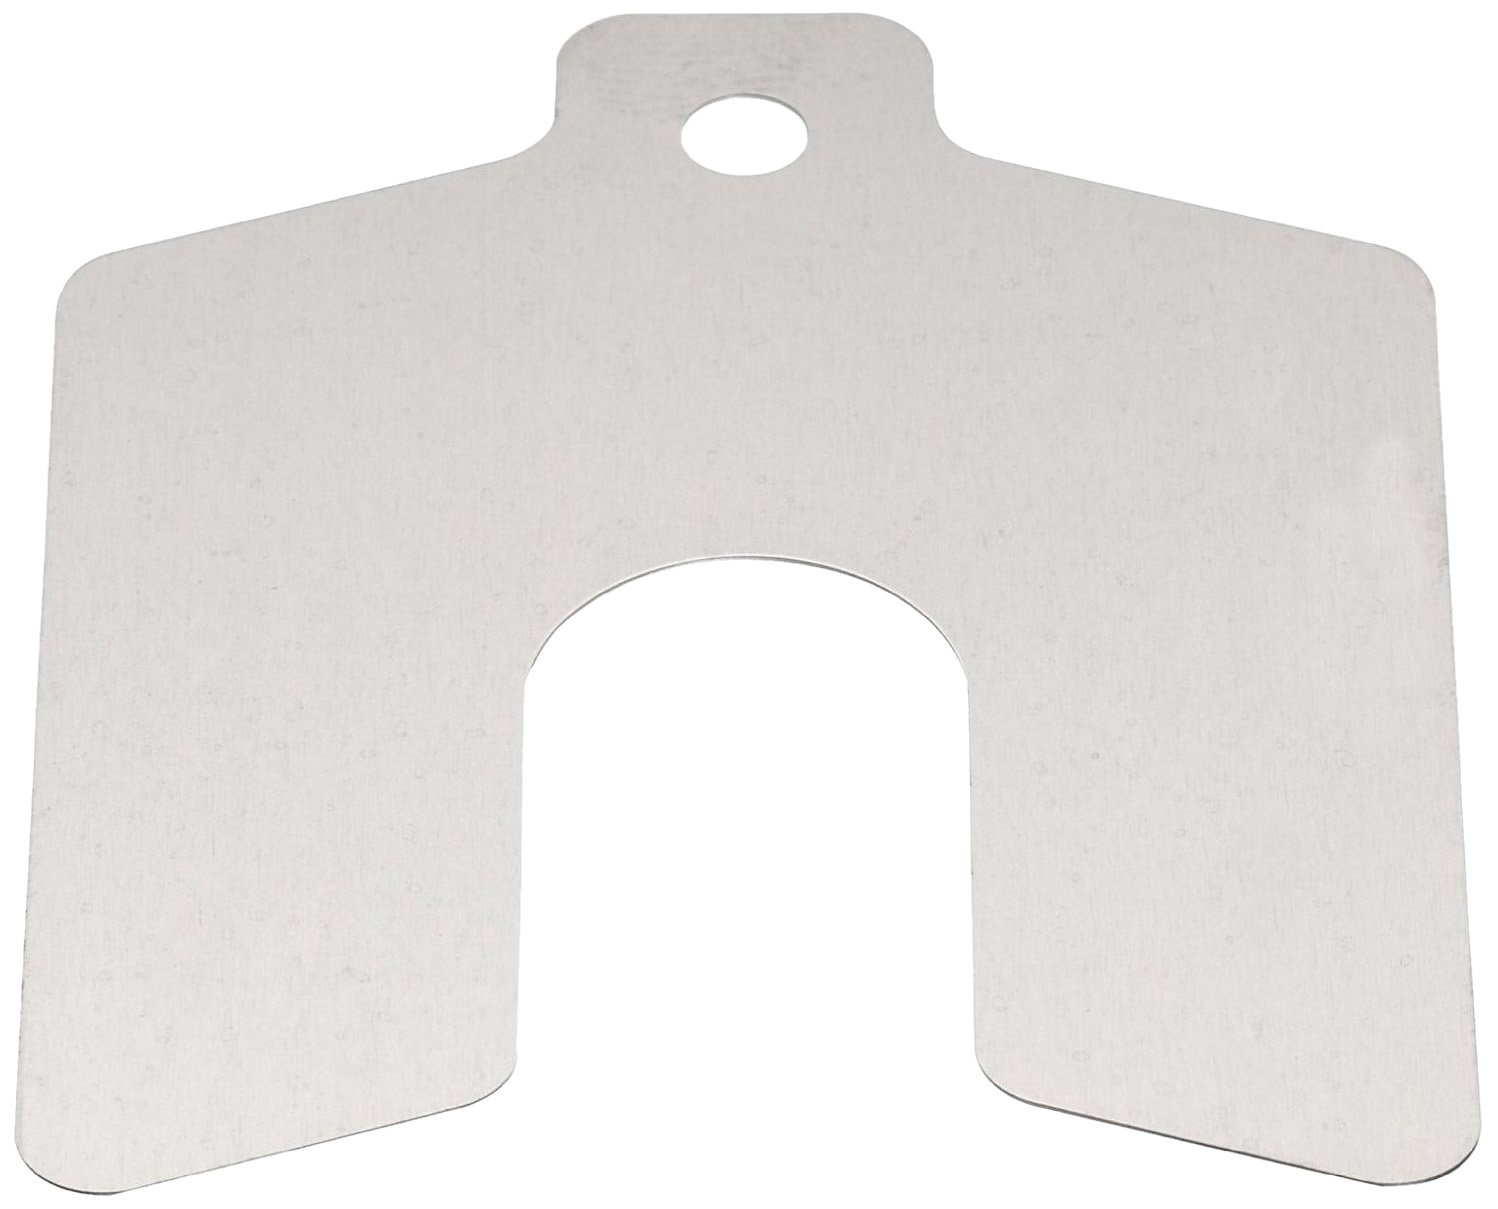 "stainless steel Shim Stock 0.020 Thick 6/"" Width 6/"" long"